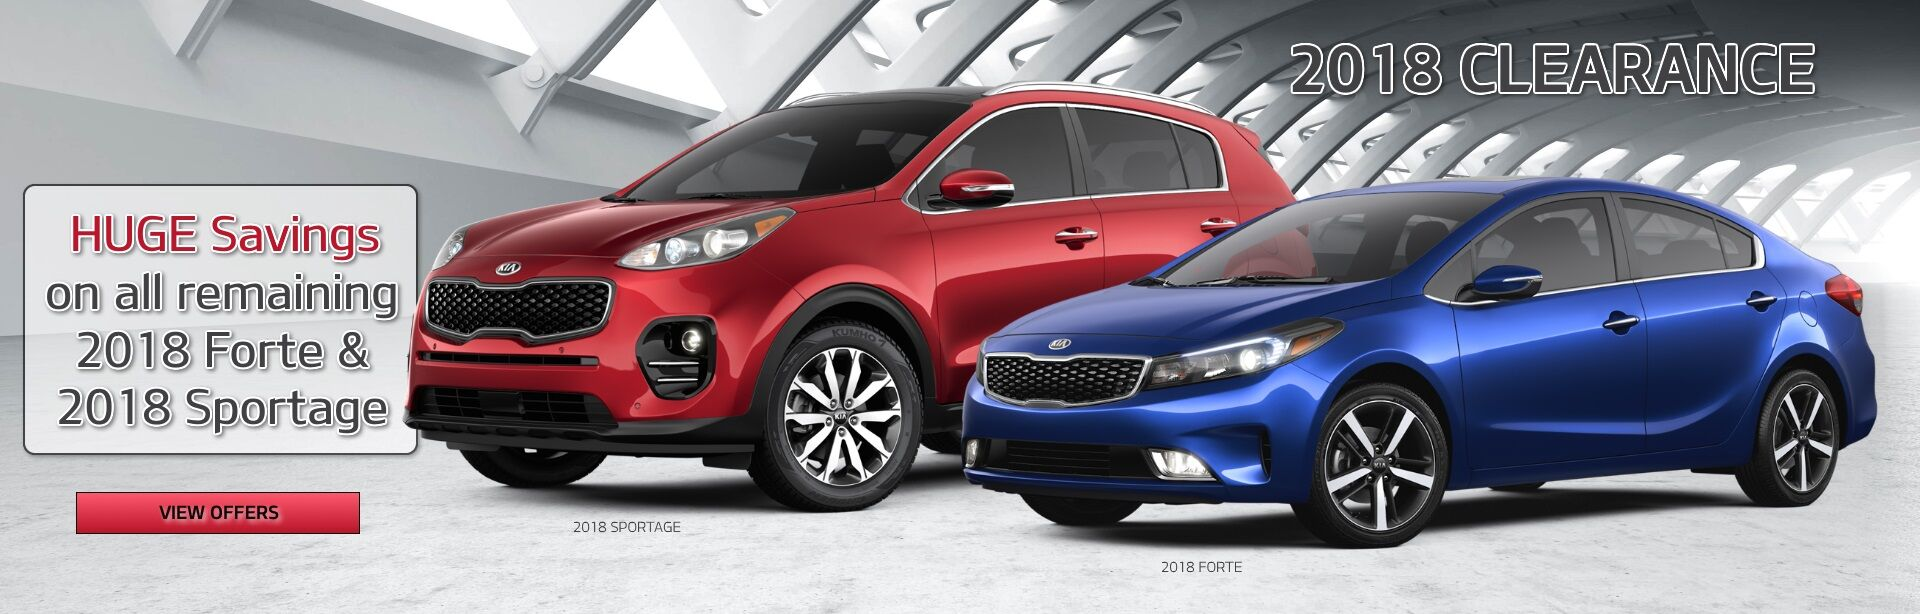 2018 Sportage and Forte Clearance